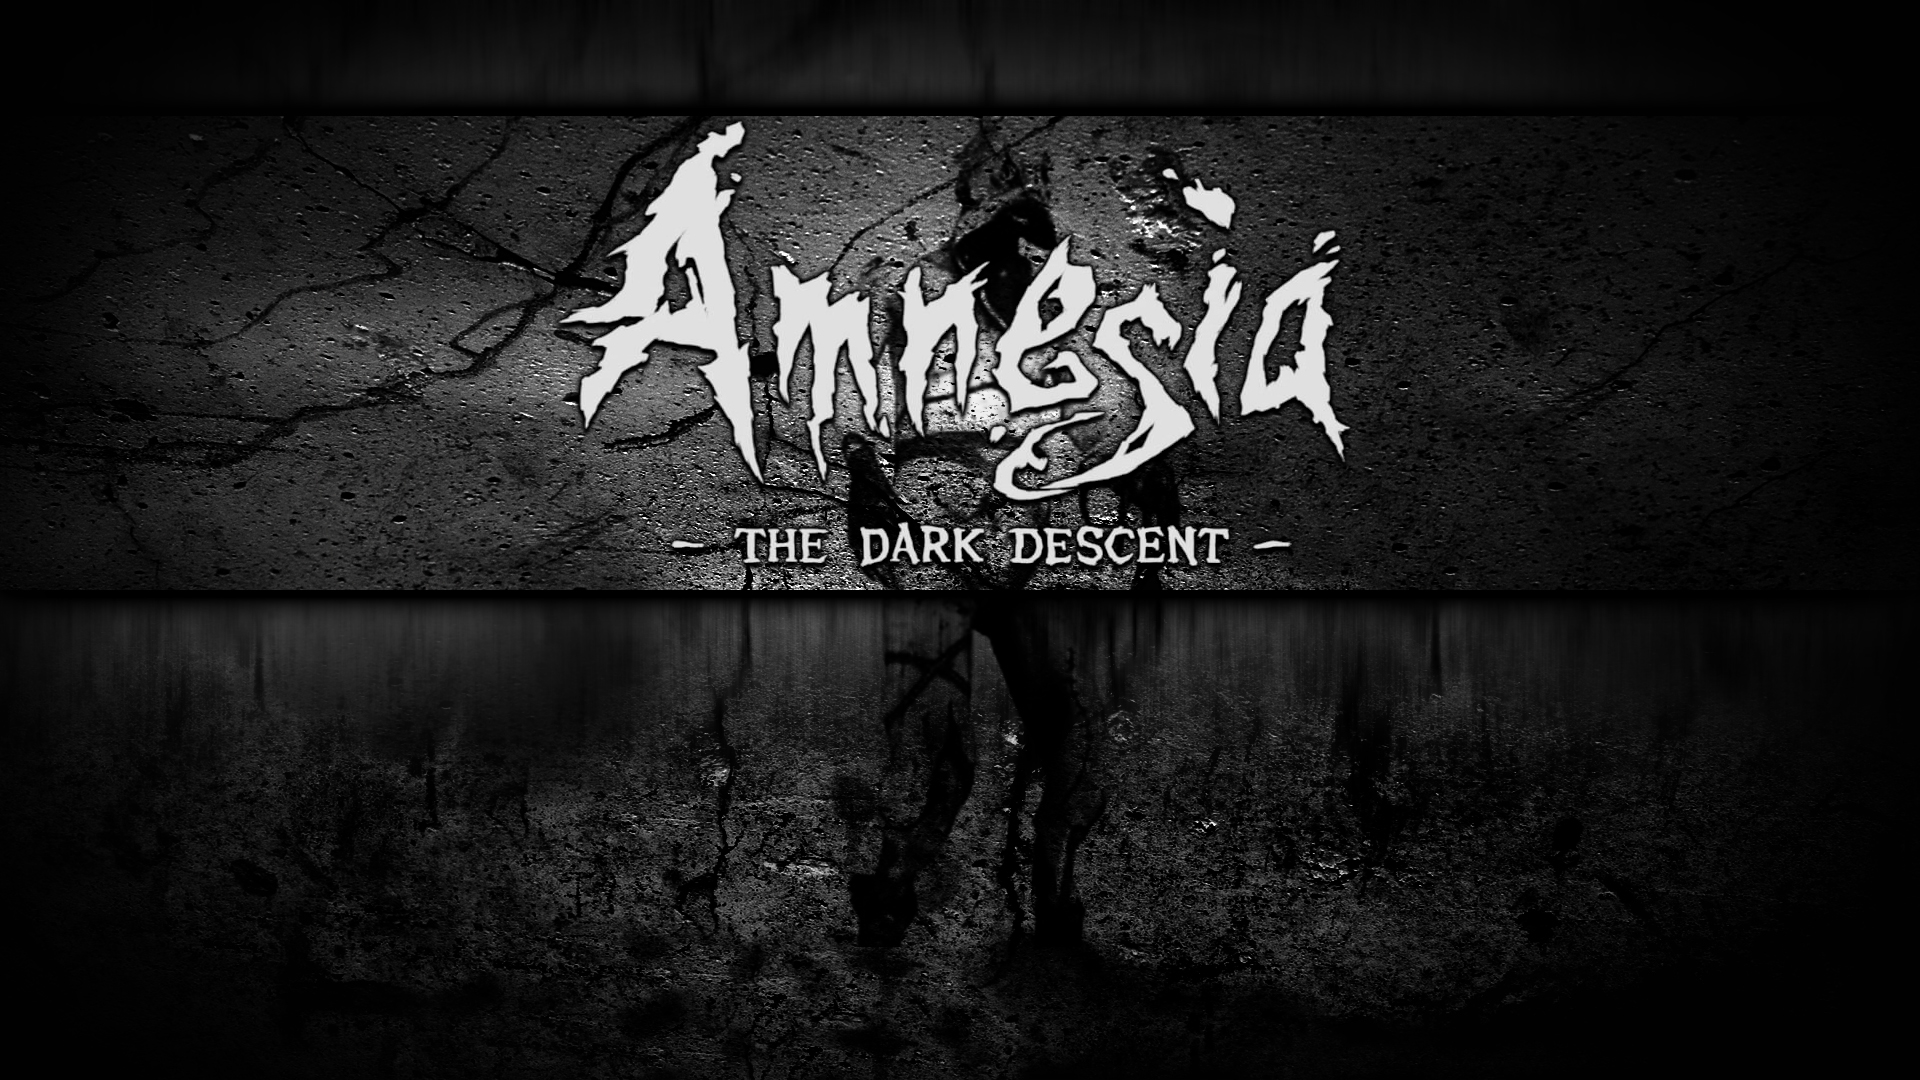 Free Download Amnesia Wallpaper By Ramzonz 1920x1080 For Your